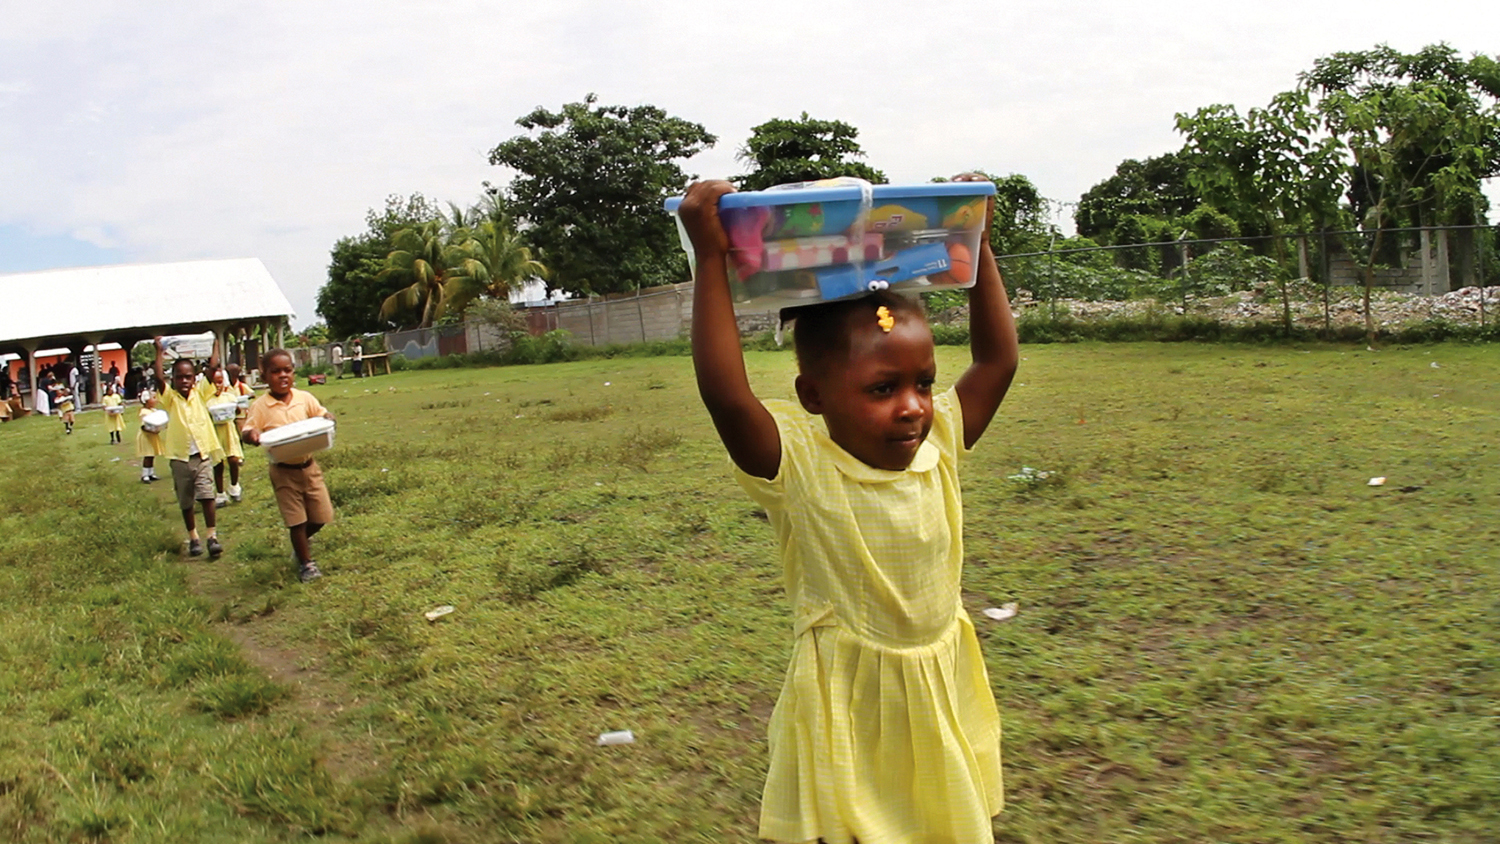 Each shoebox counts, because each child matters to God.